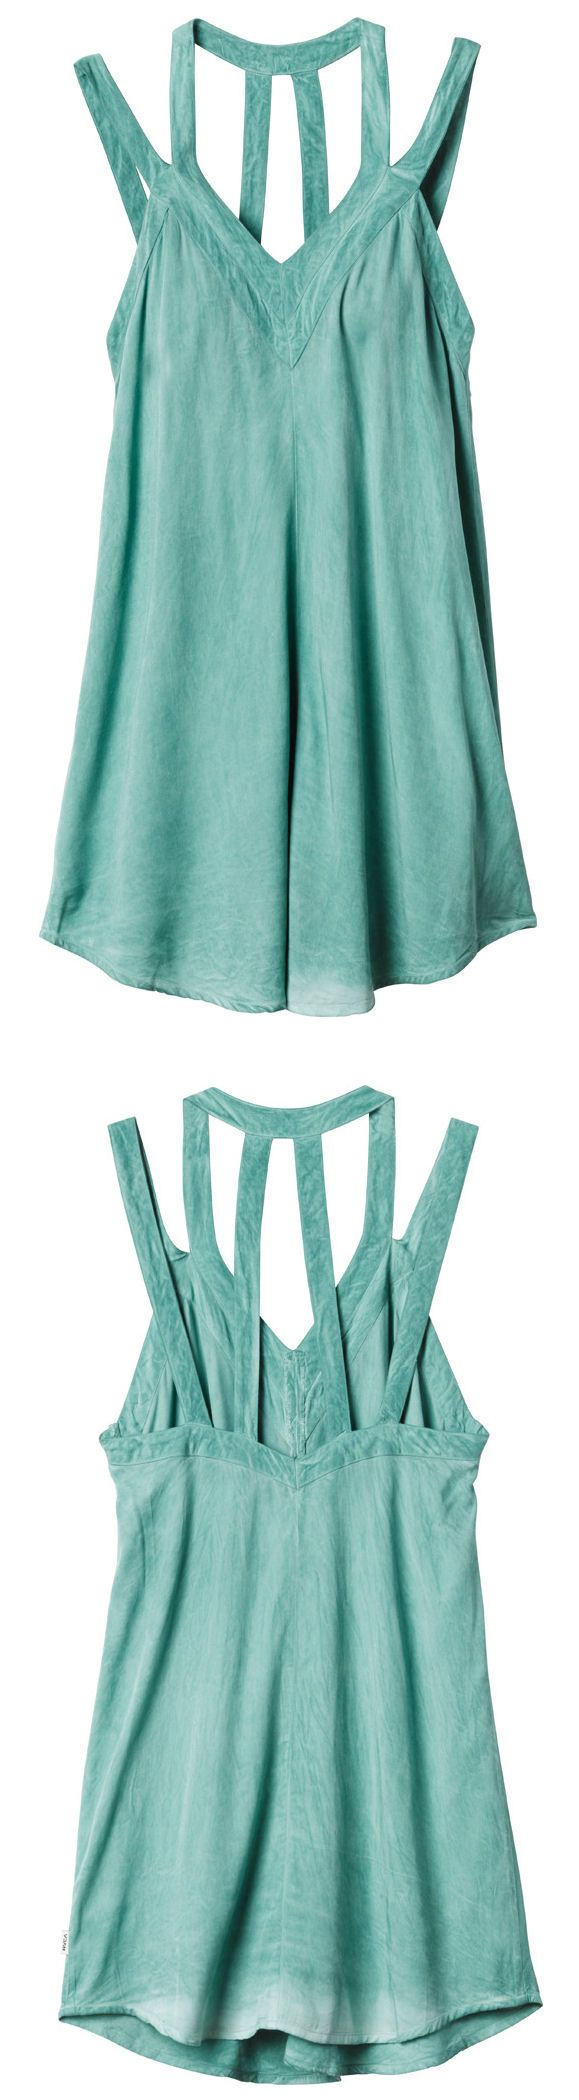 Mint Strappy Summer Dress